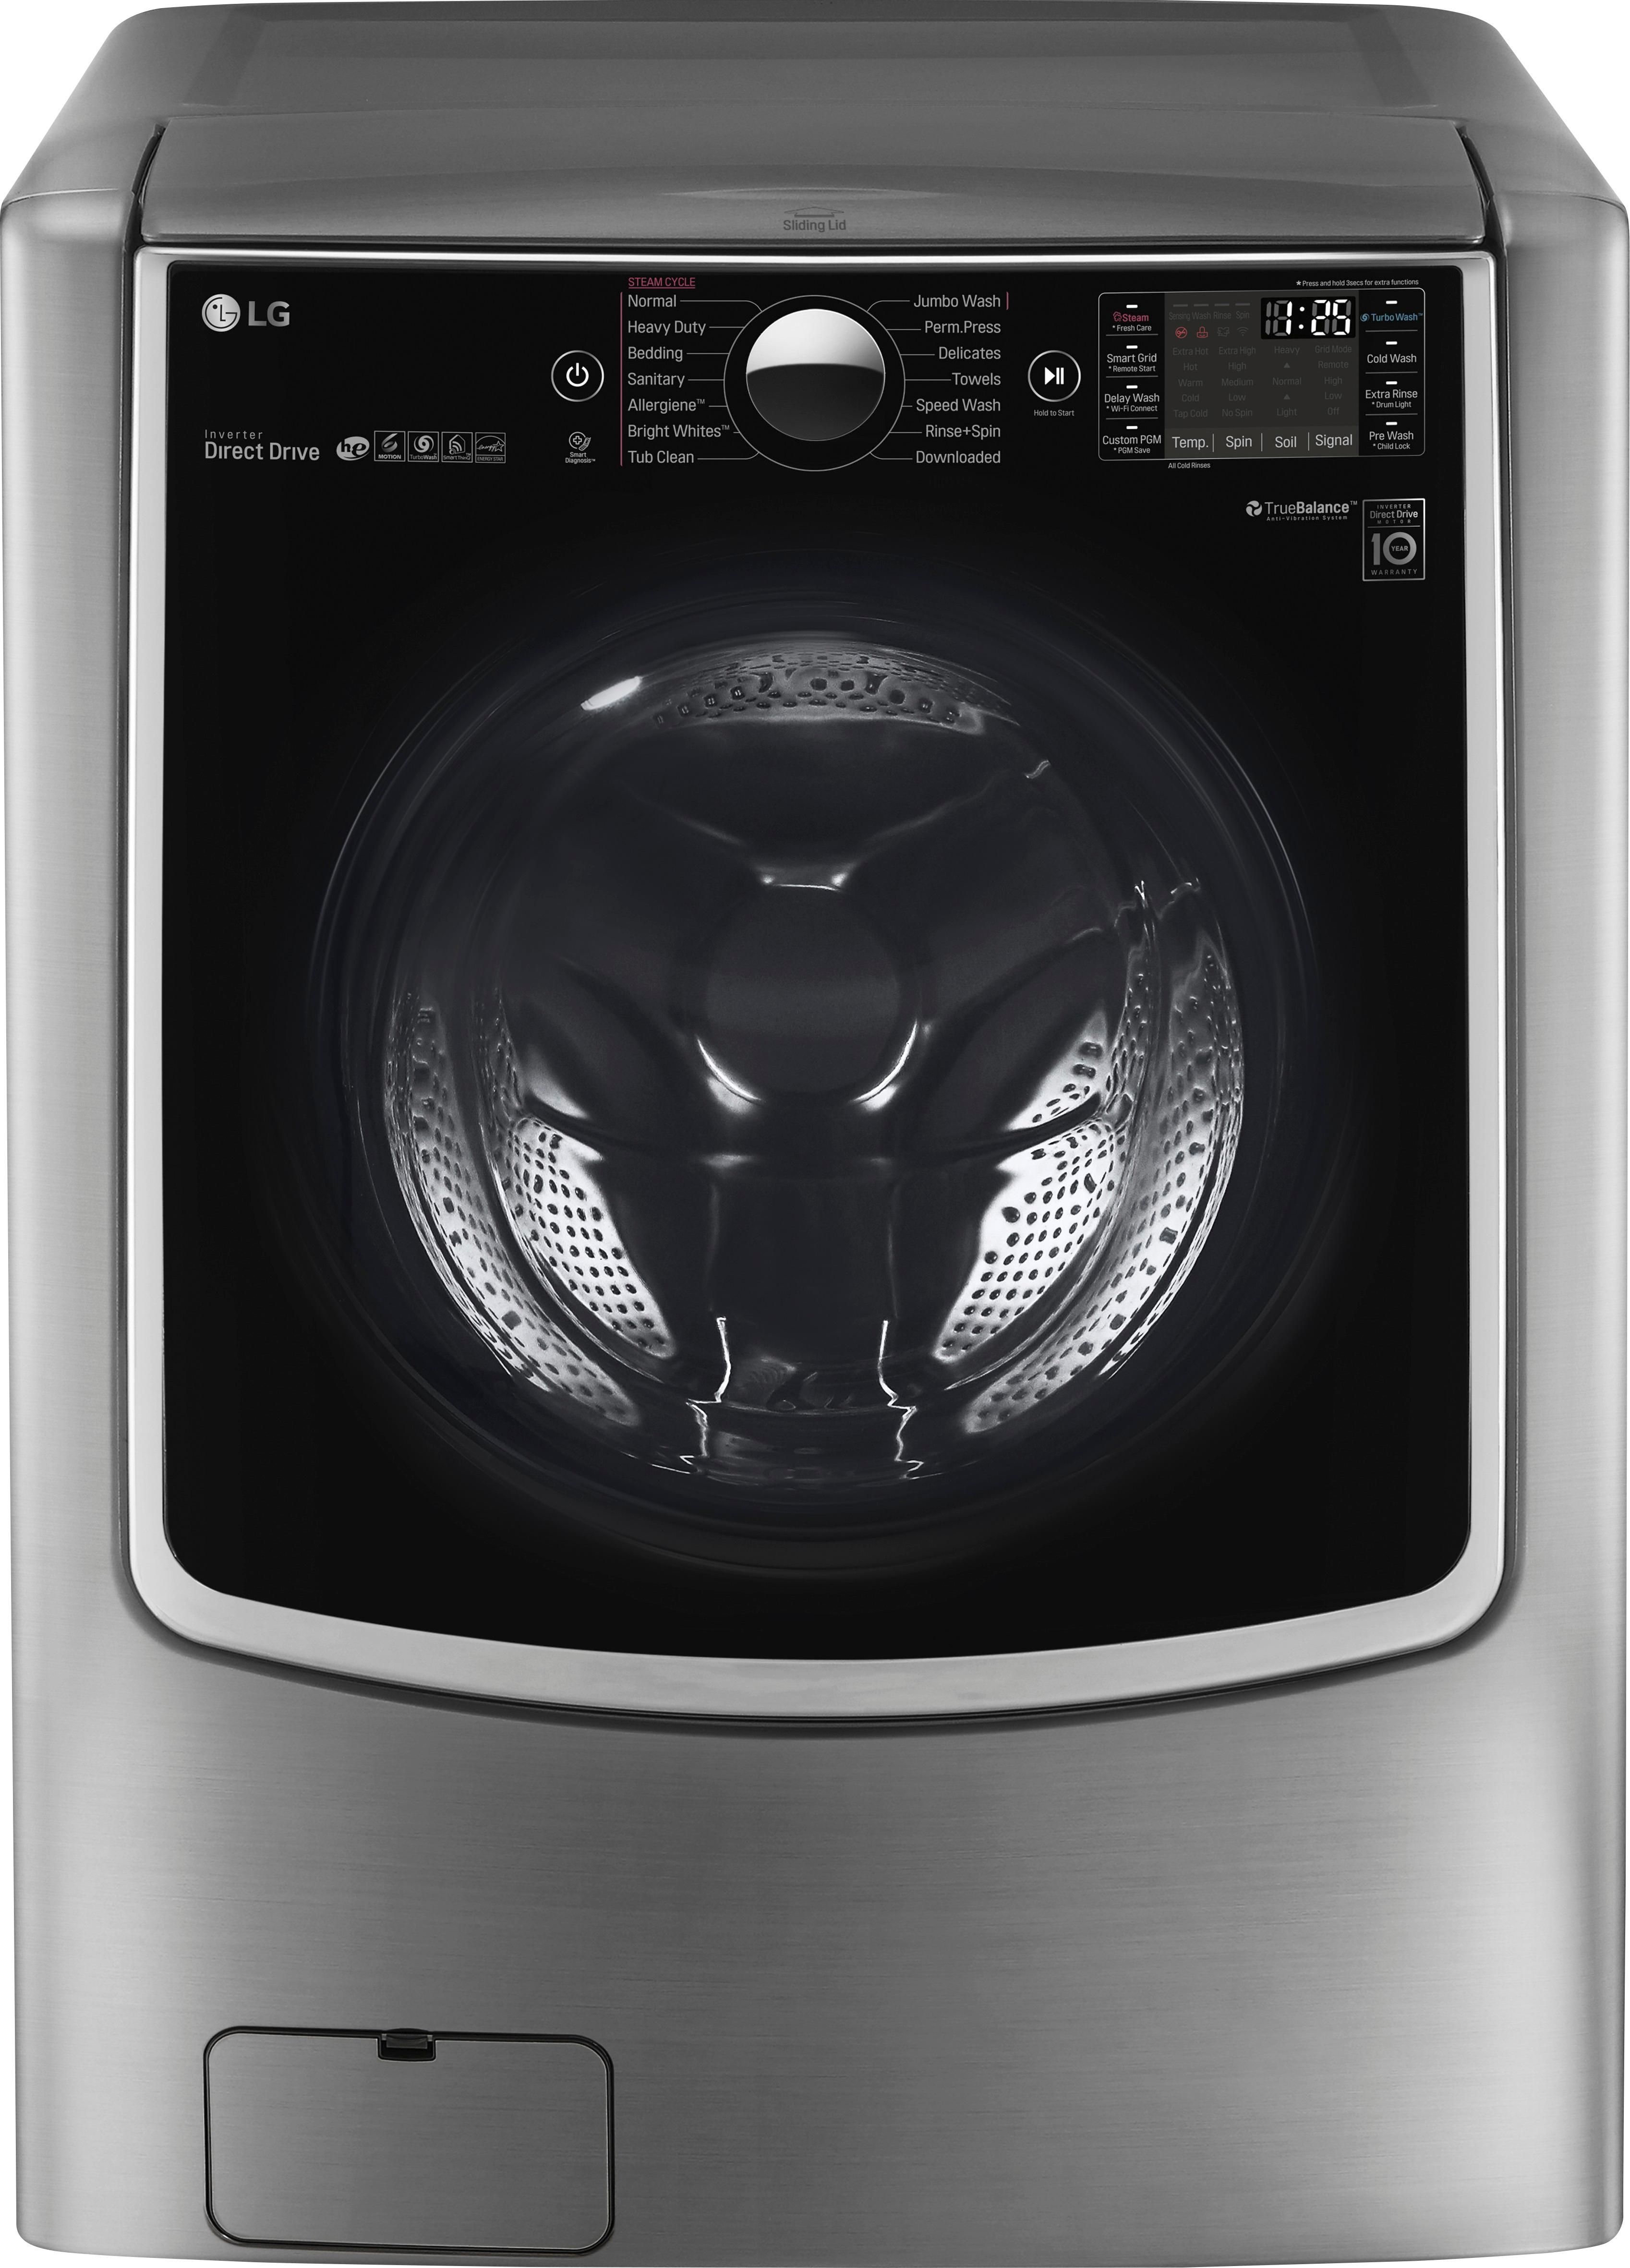 Lg 5 2 Cu Ft 14 Cycle Front Loading Smart Wi Fi Washer With Turbowash And Steam Graphite Steel Wm9000hva In 2020 Stackable Washer Stackable Washer And Dryer Maytag Washer And Dryer